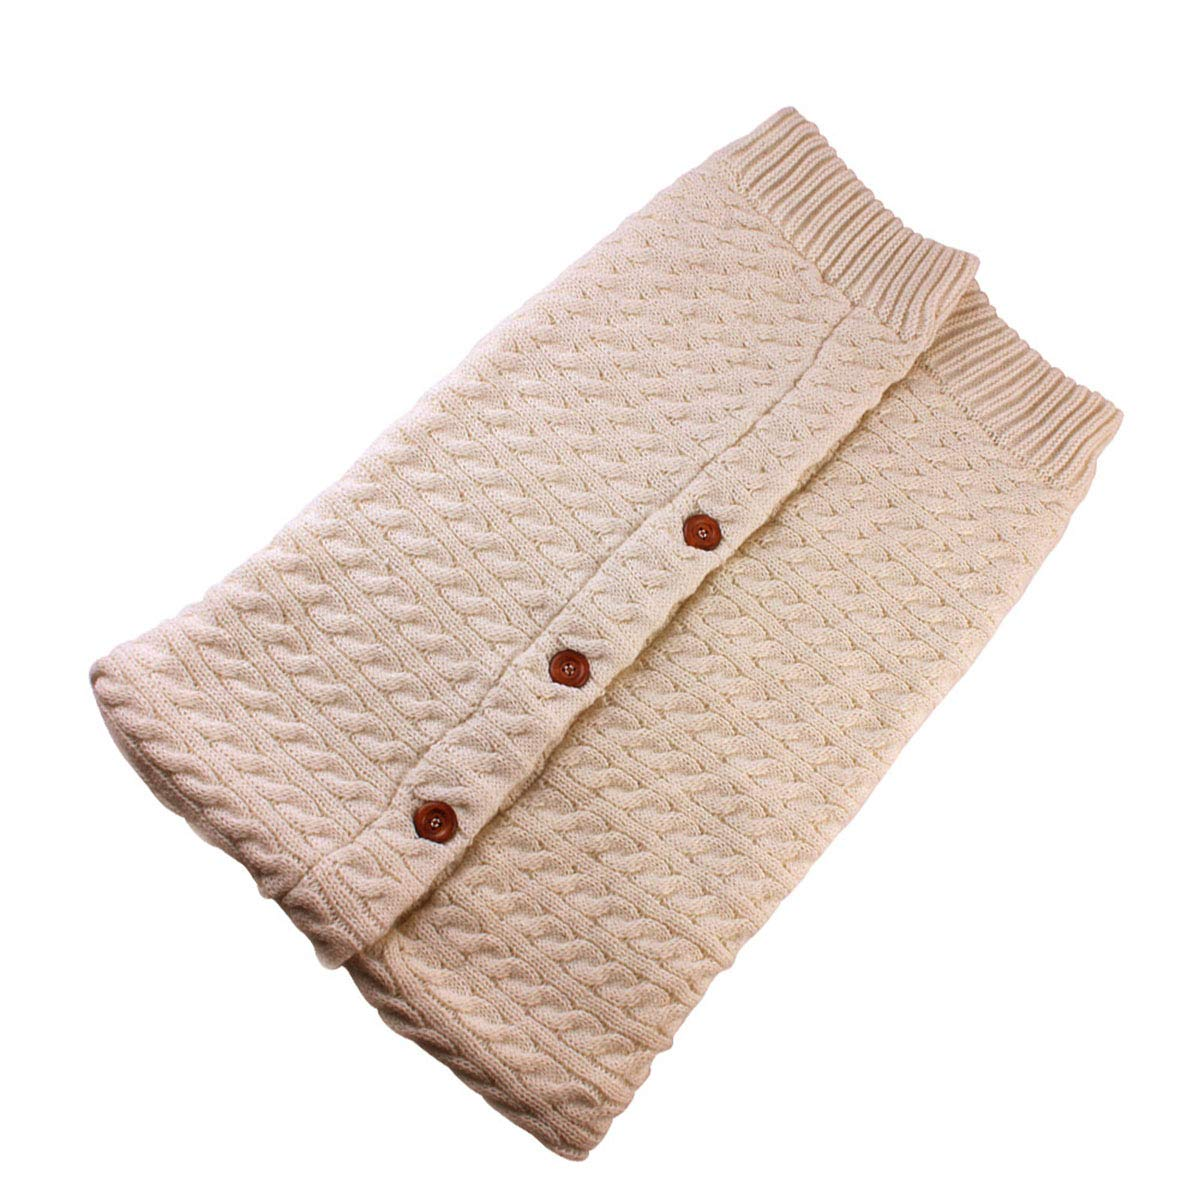 Amazon.com: Newborn Baby Swaddle Blanket Fleece Stroller Wrap Nap Blanket Plus Velvet,Baby Kids Toddler Thick Knit Soft Warm Blanket Swaddle Sleeping Bag ...